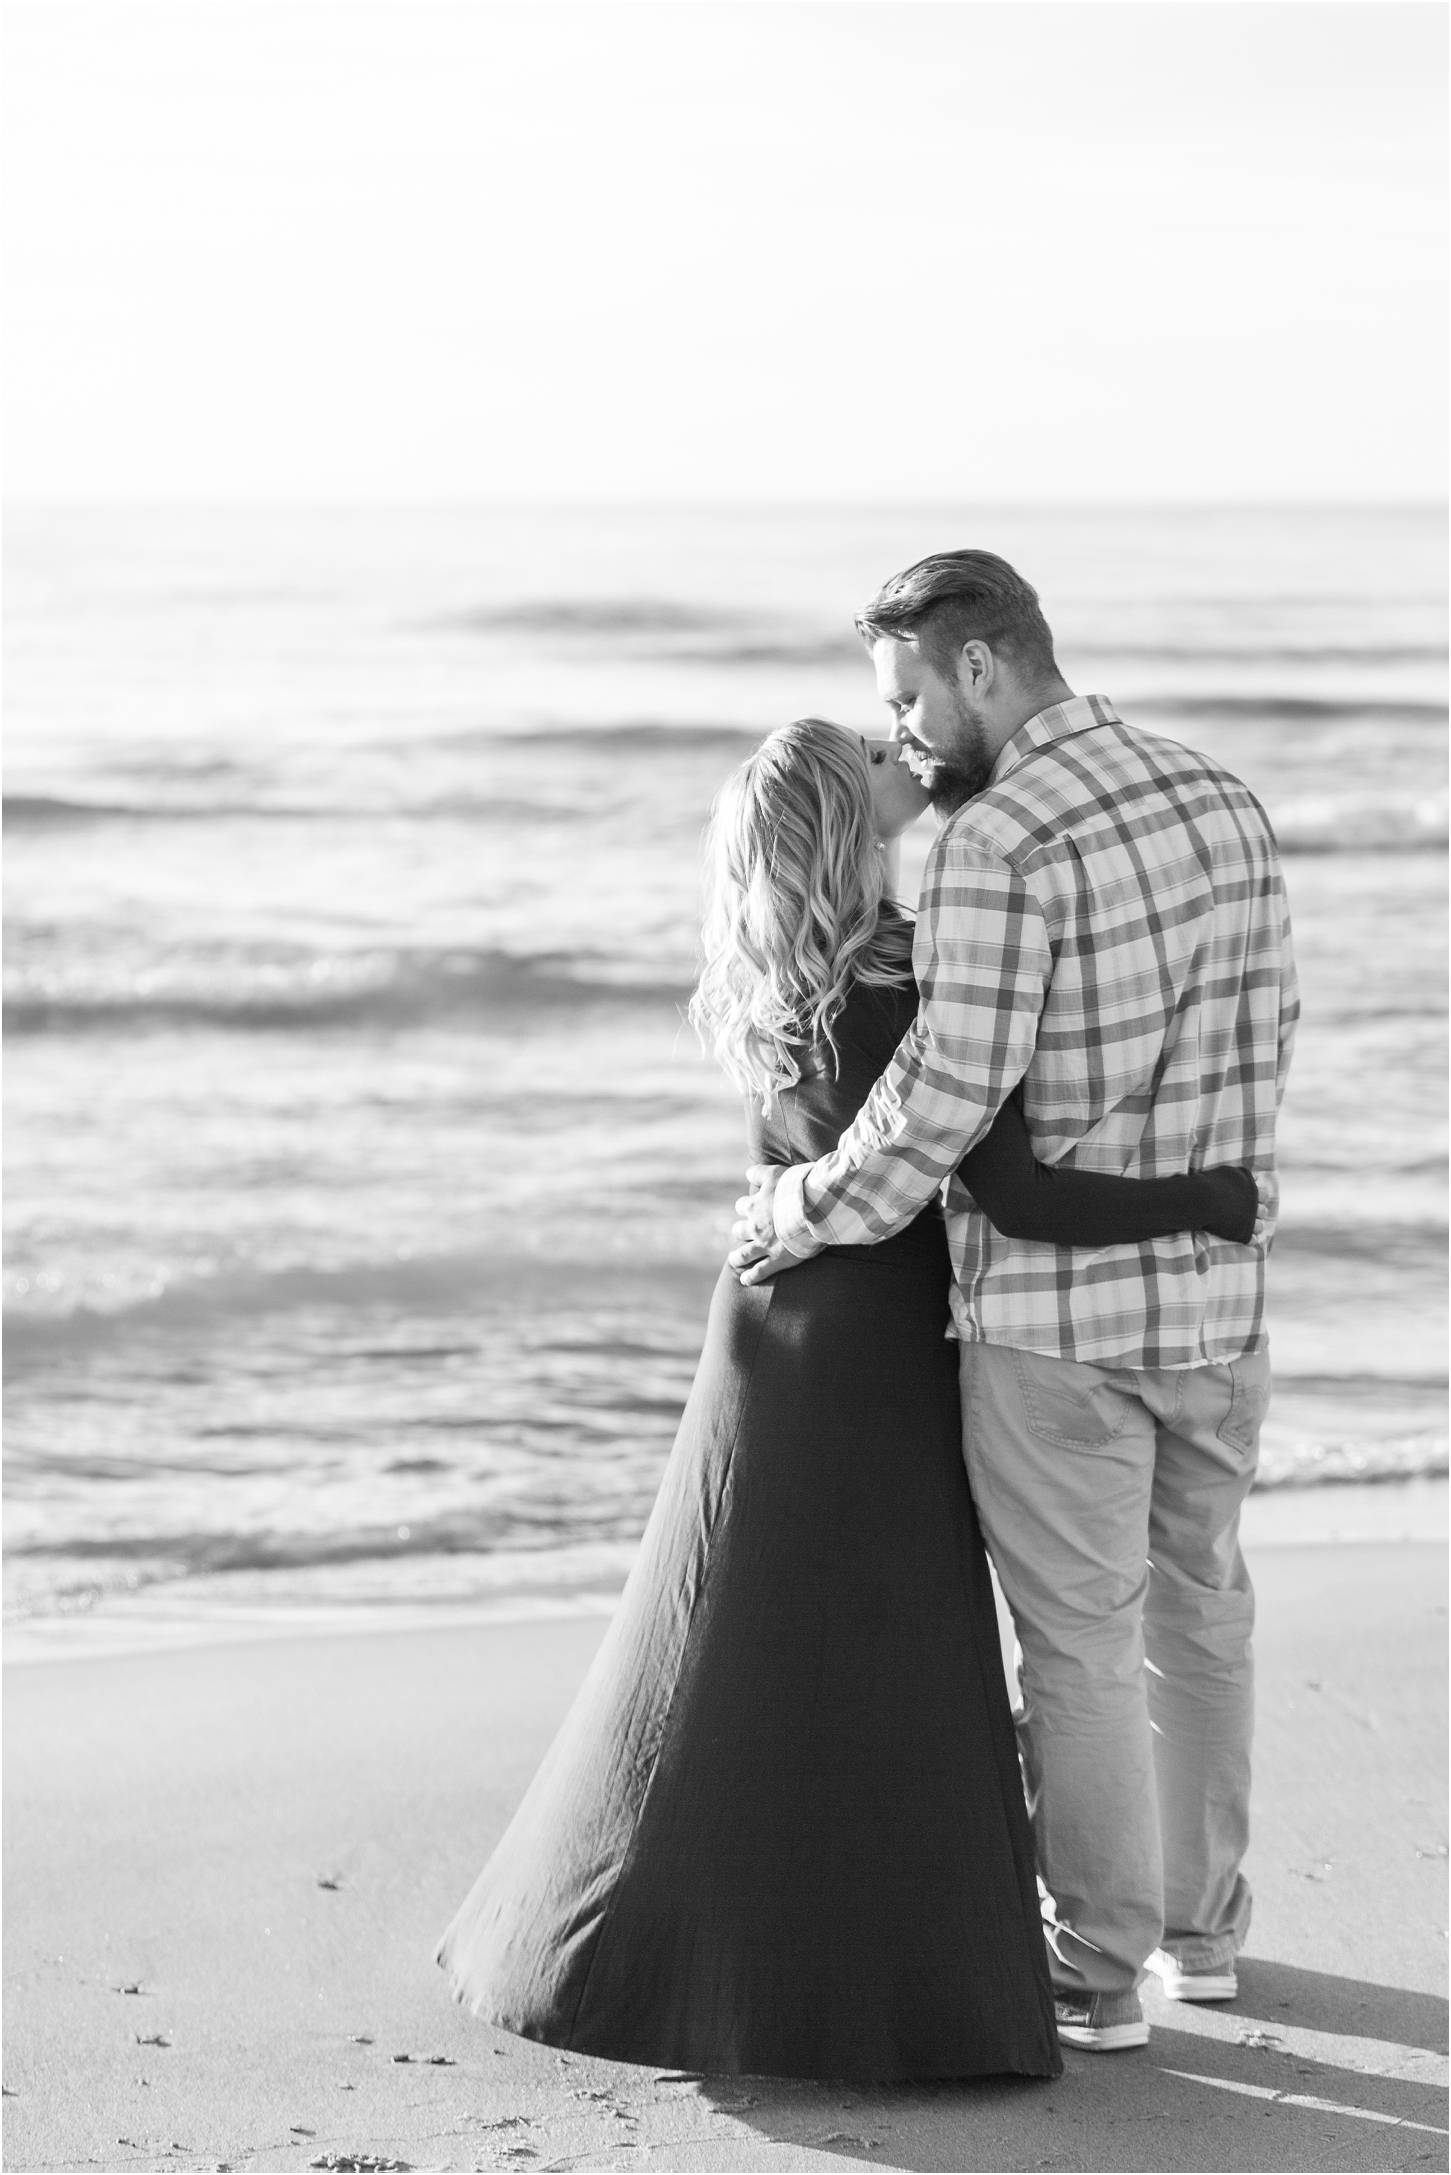 romantic-sunset-beach-engagement-photos-at-silver-beach-in-saint-joseph-mi-by-courtney-carolyn-photography_0029.jpg